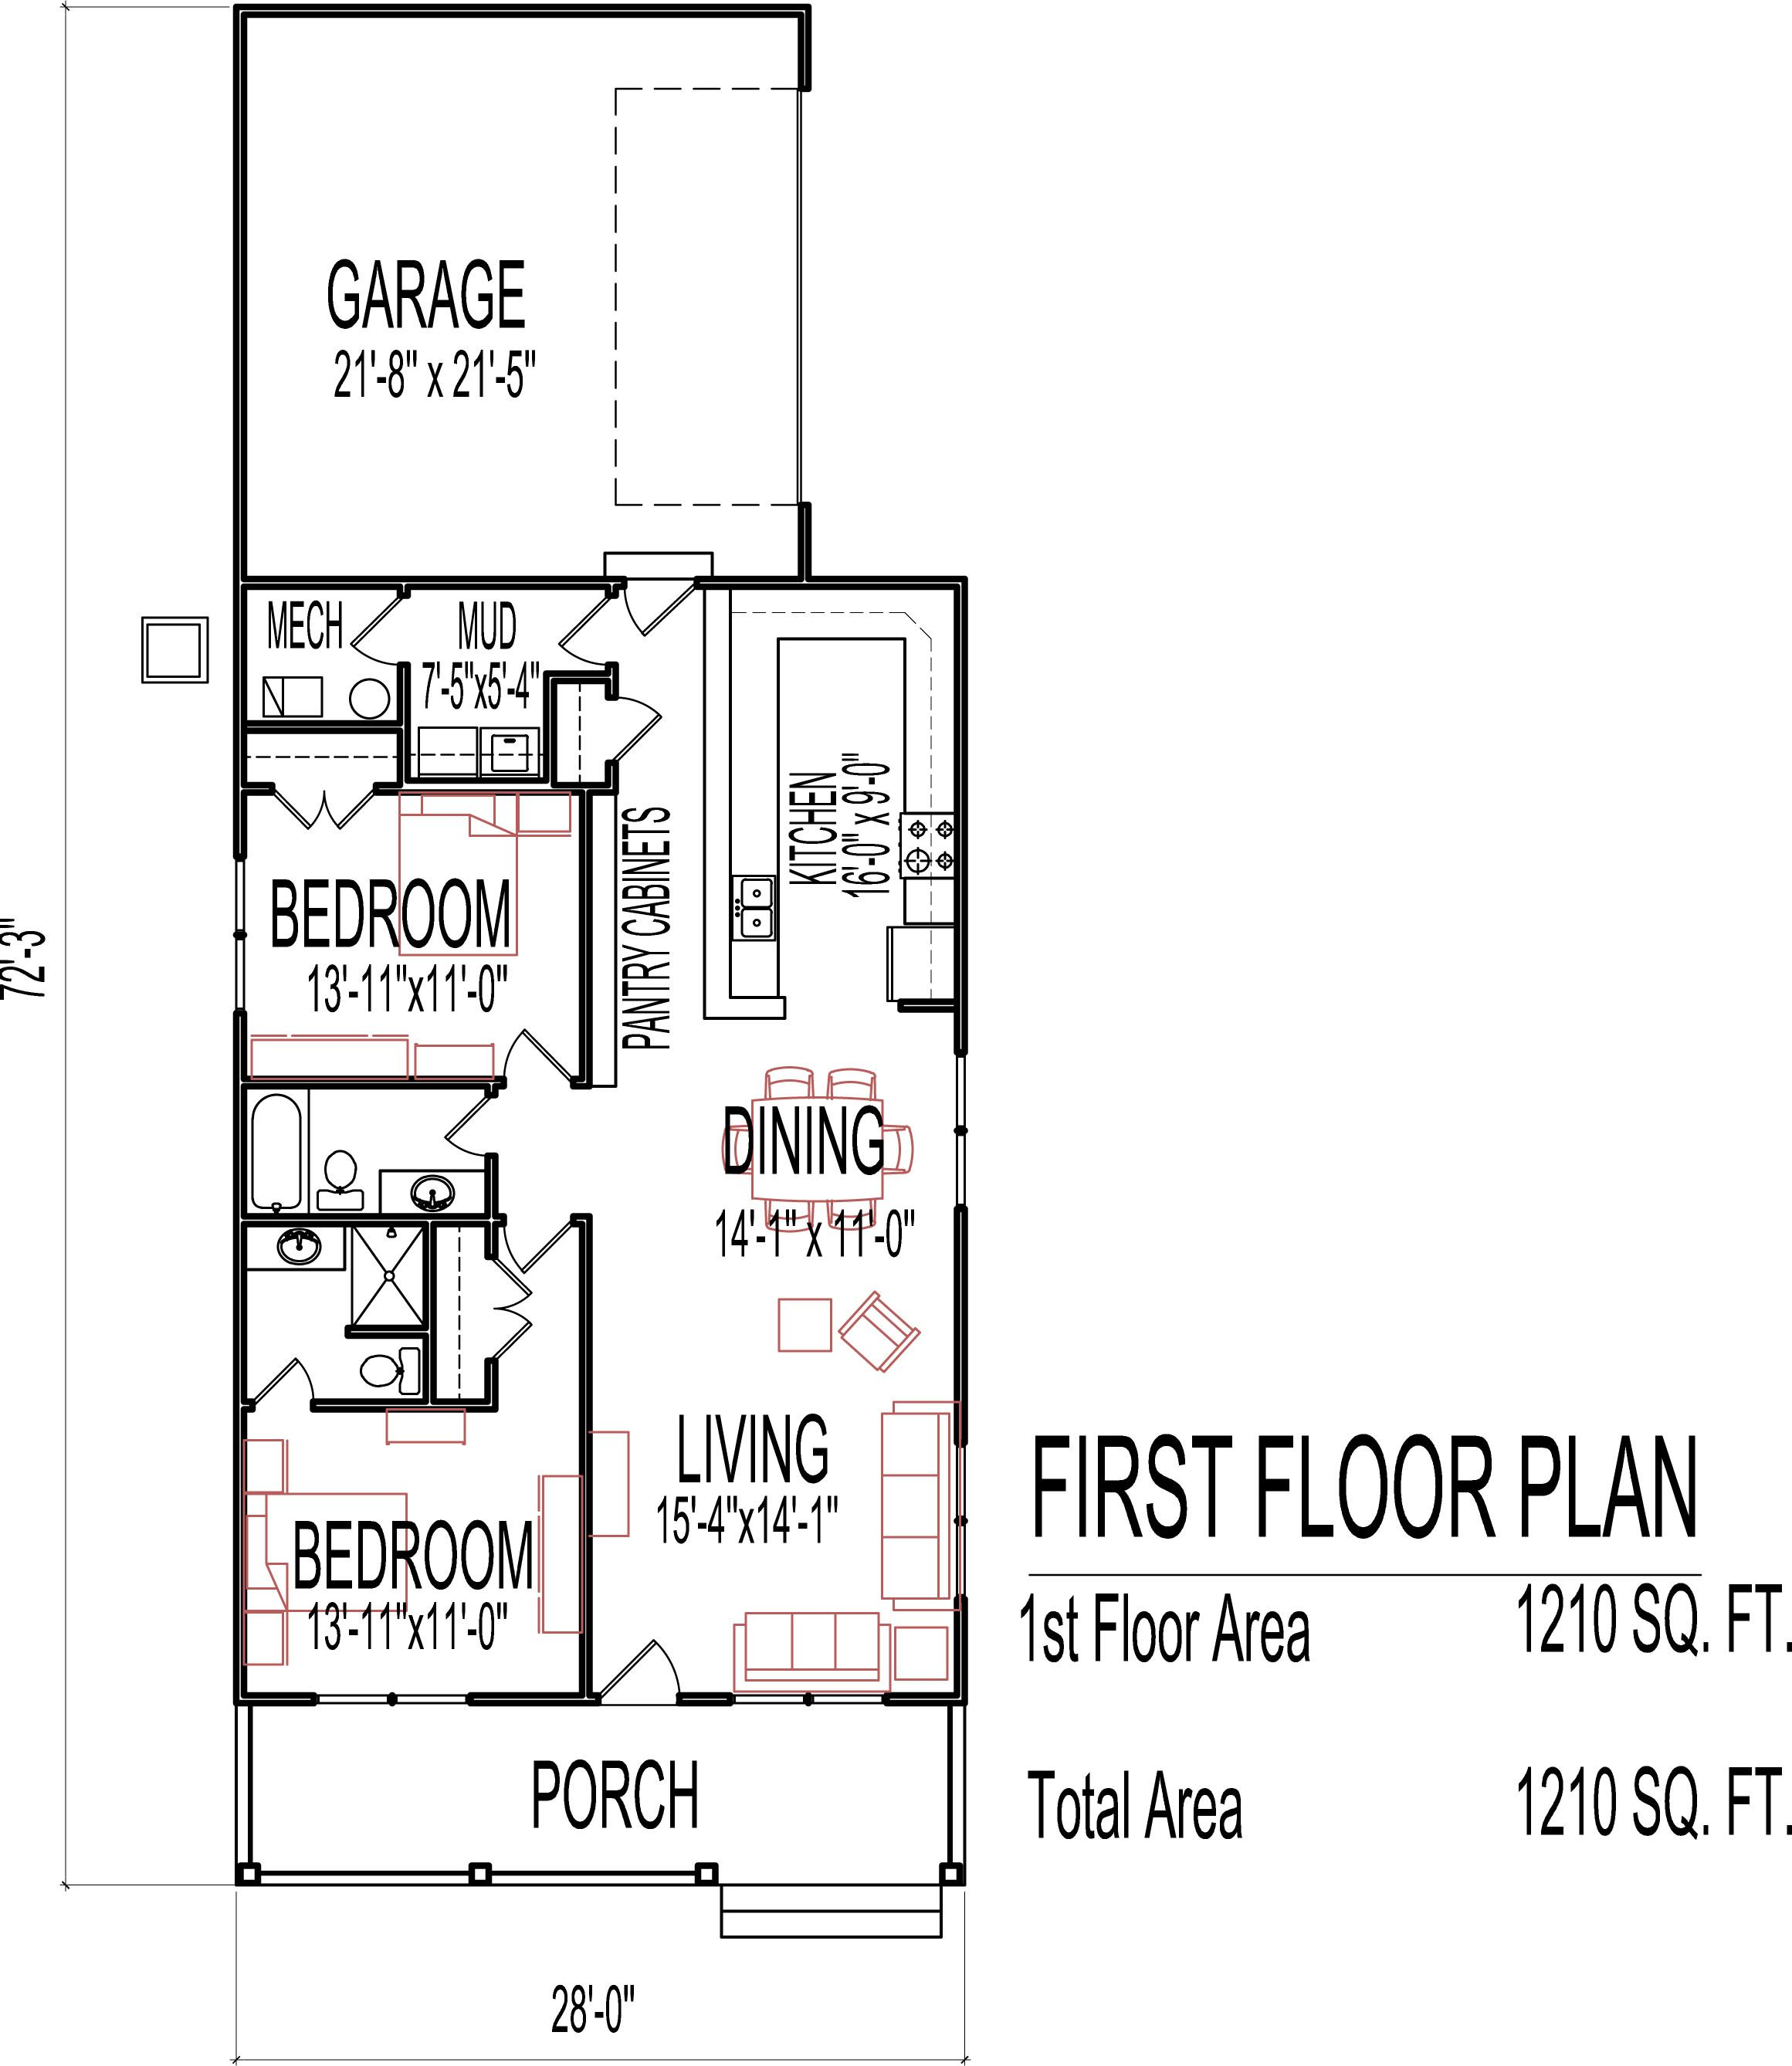 Small low cost economical 2 bedroom 2 bath 1200 sq ft for 3 bedroom 1 story house plans